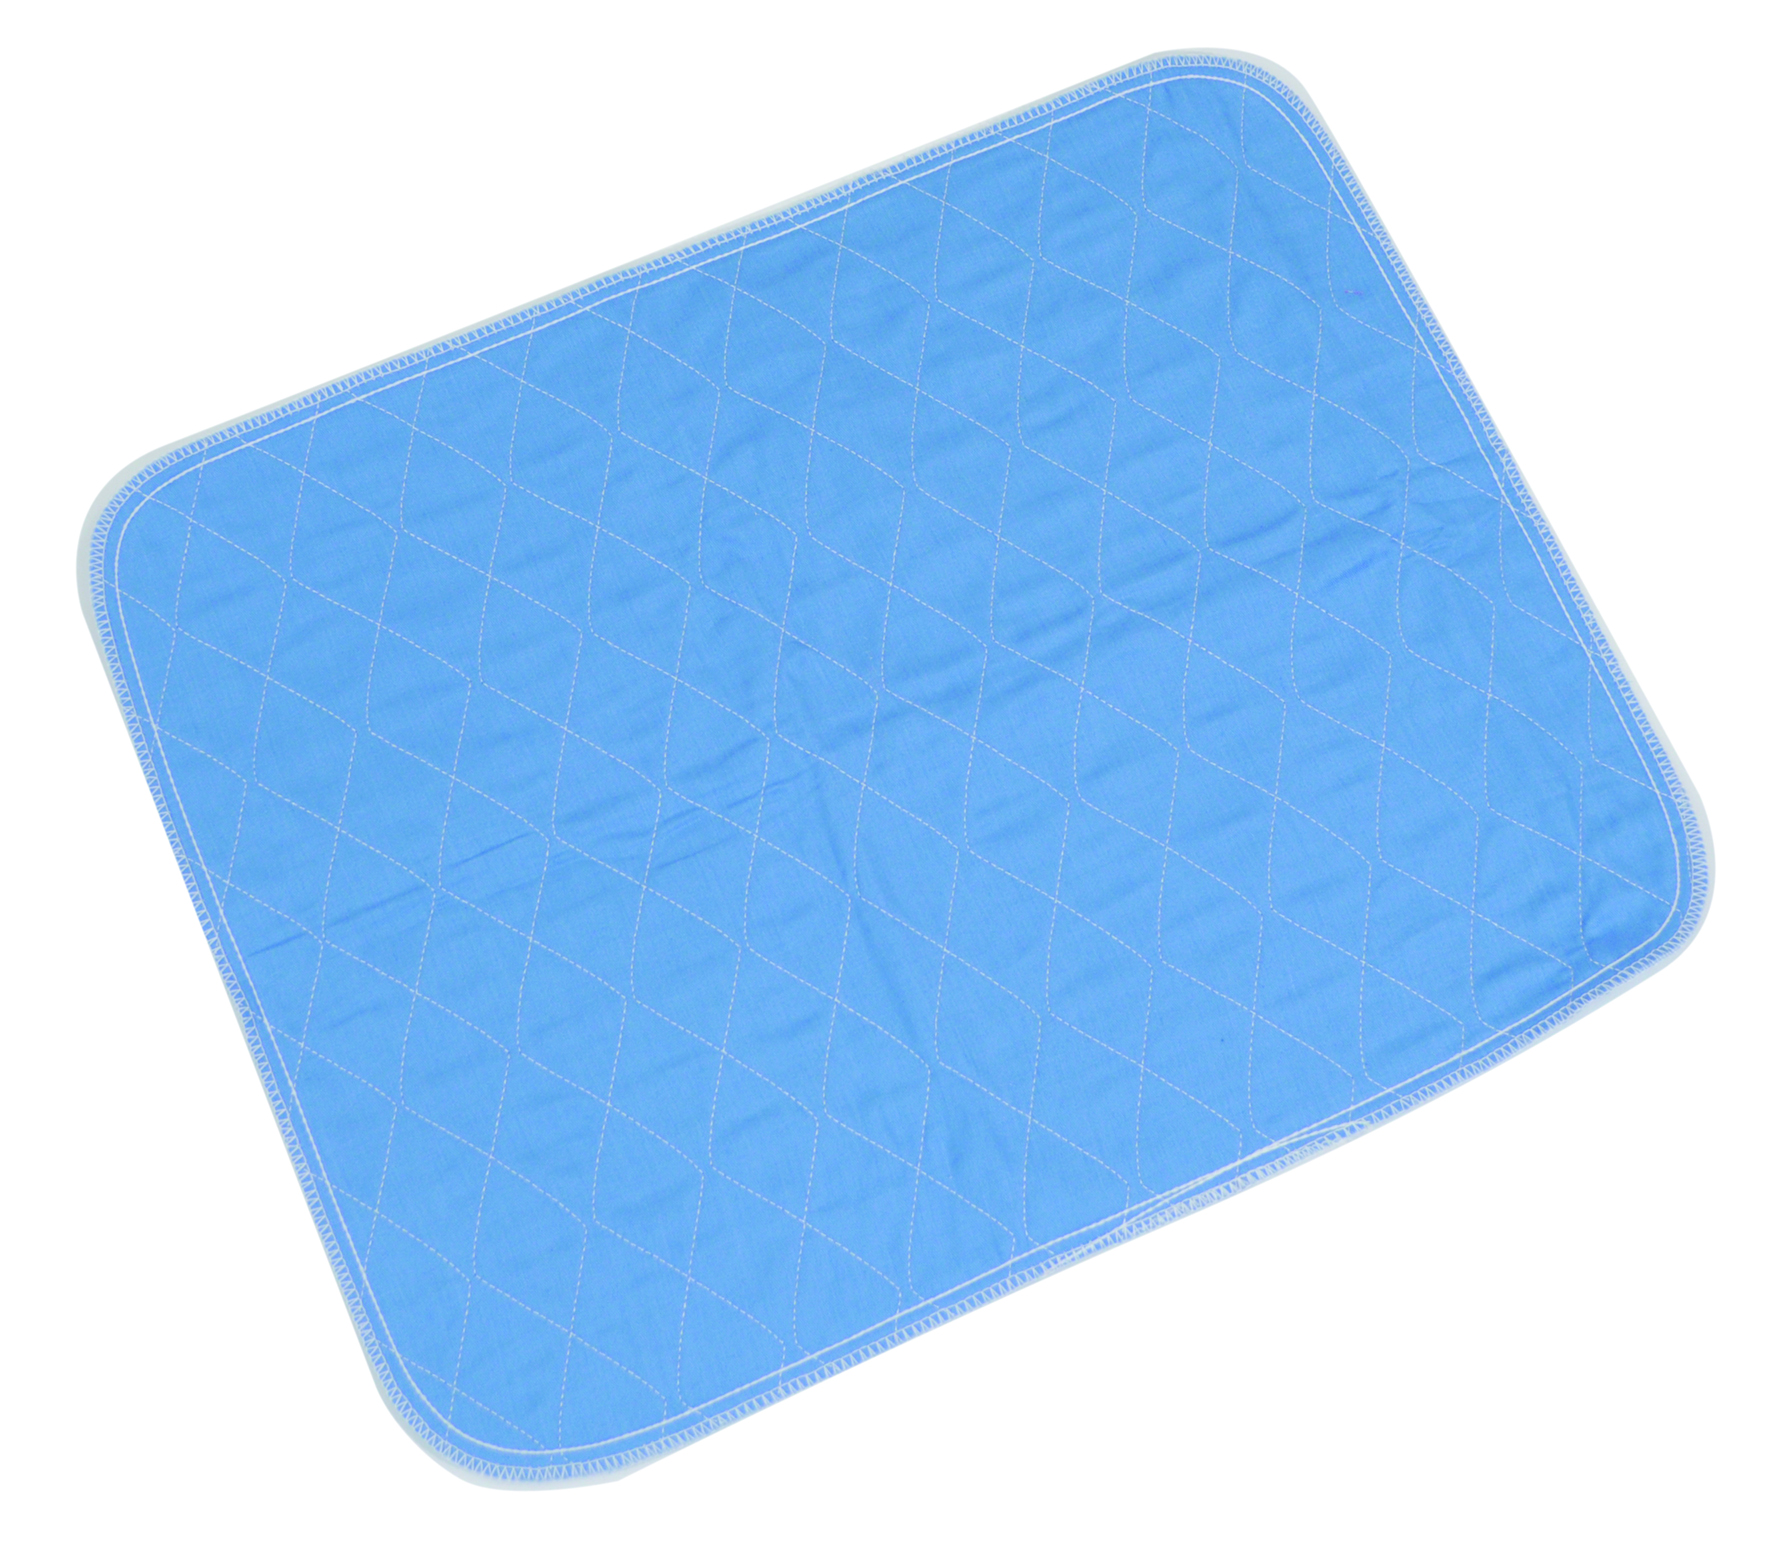 blue chair pads cheap office chairs for sale washable or bed pad aidapt brand ebay